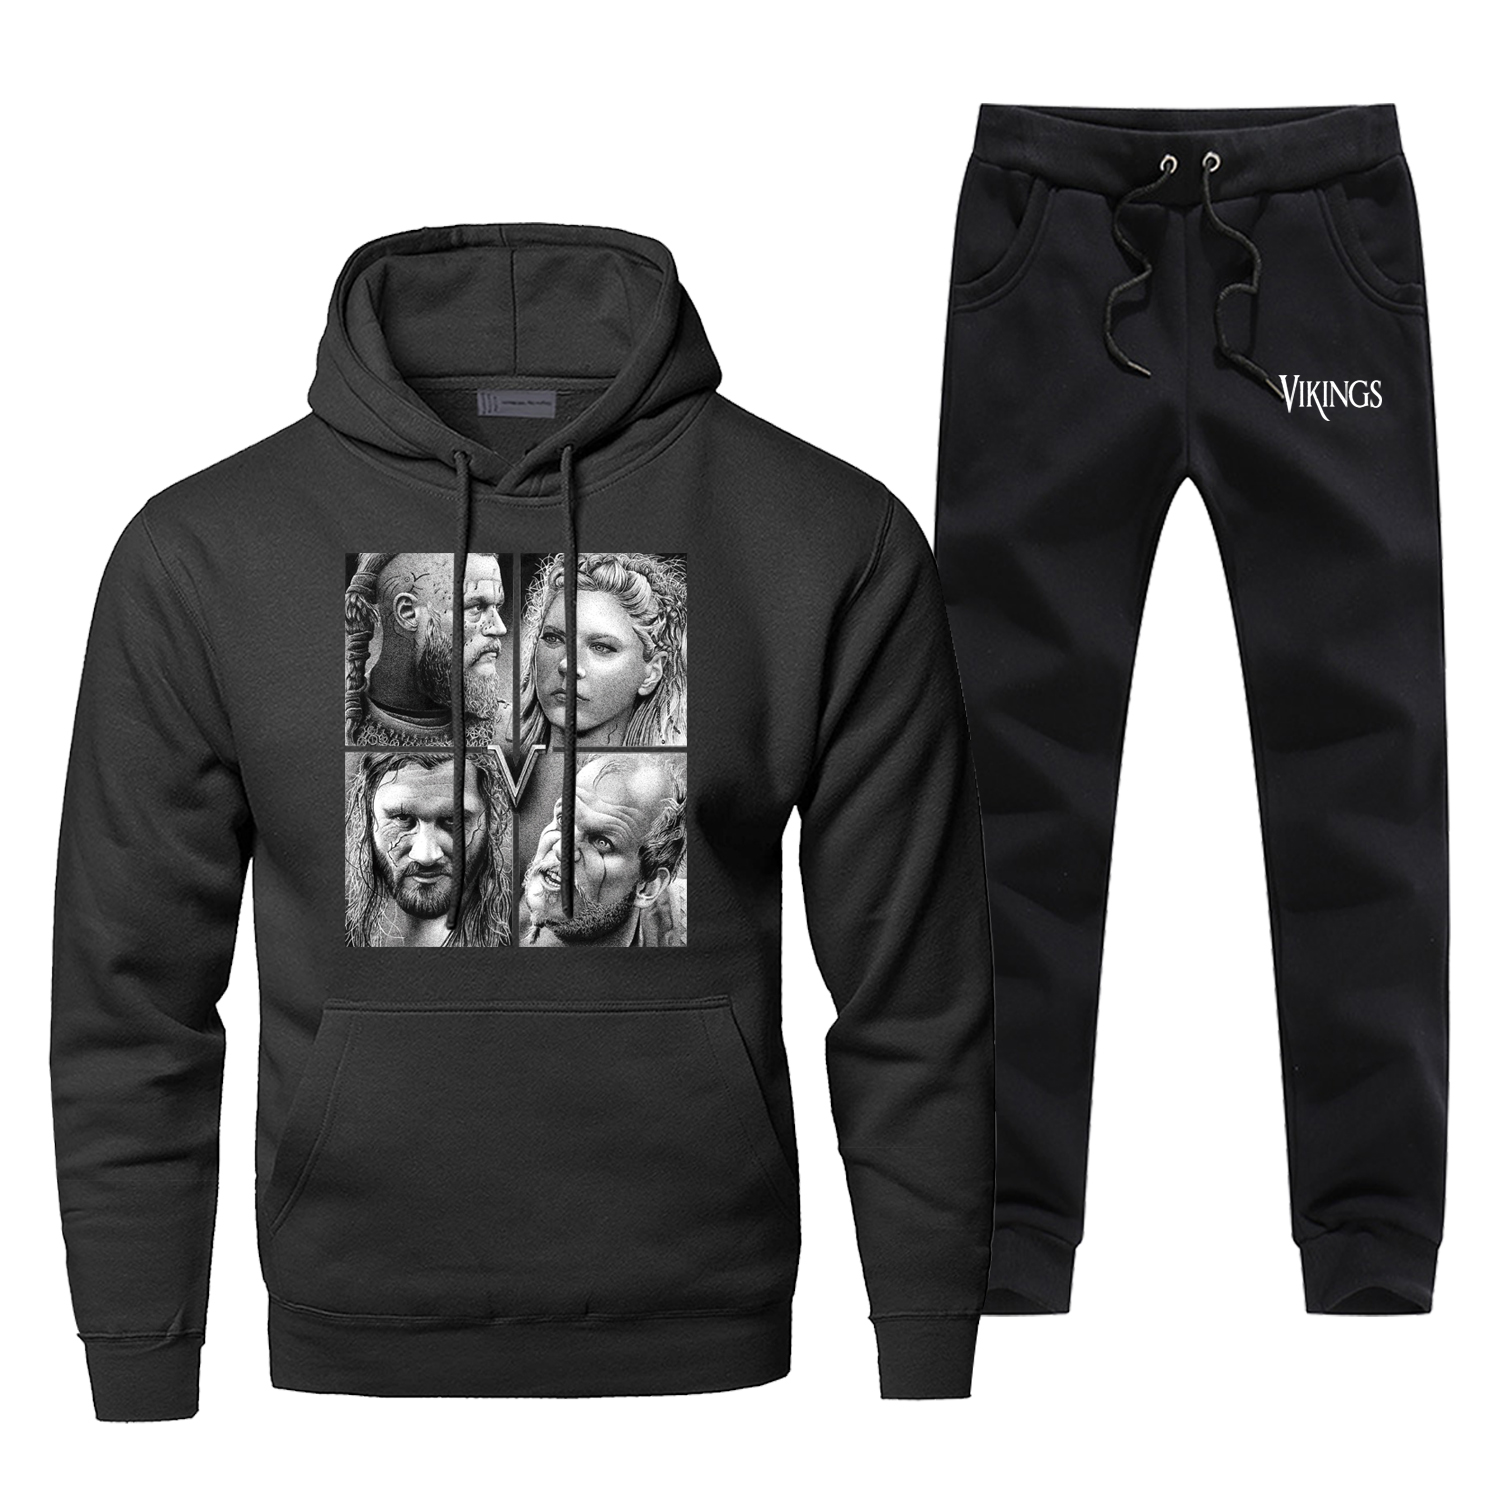 Tv Show Odin Viking Men Hoodies+pants 2Pcs Sets Retro Vikings Tracksuit Men New Fleece Sweatshirt Harajuku Streetwear Sweatpants